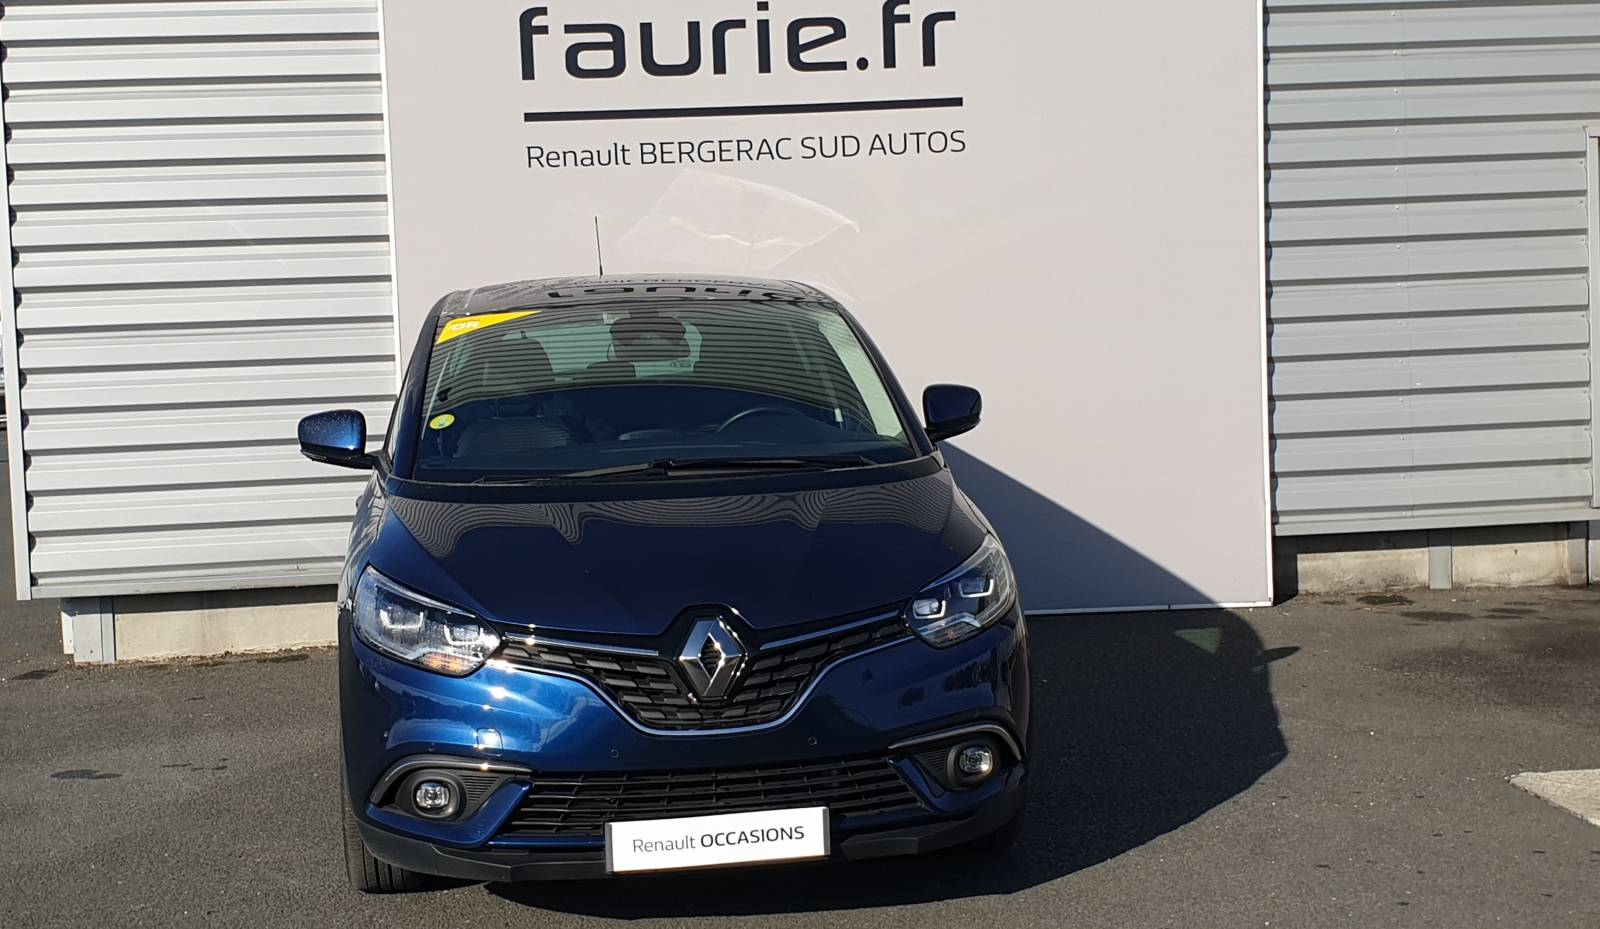 RENAULT Grand Scenic Blue dCi 150 - véhicule d'occasion - Site Internet Faurie - Renault - Faurie Auto Bergerac - 24100 - Bergerac - 2